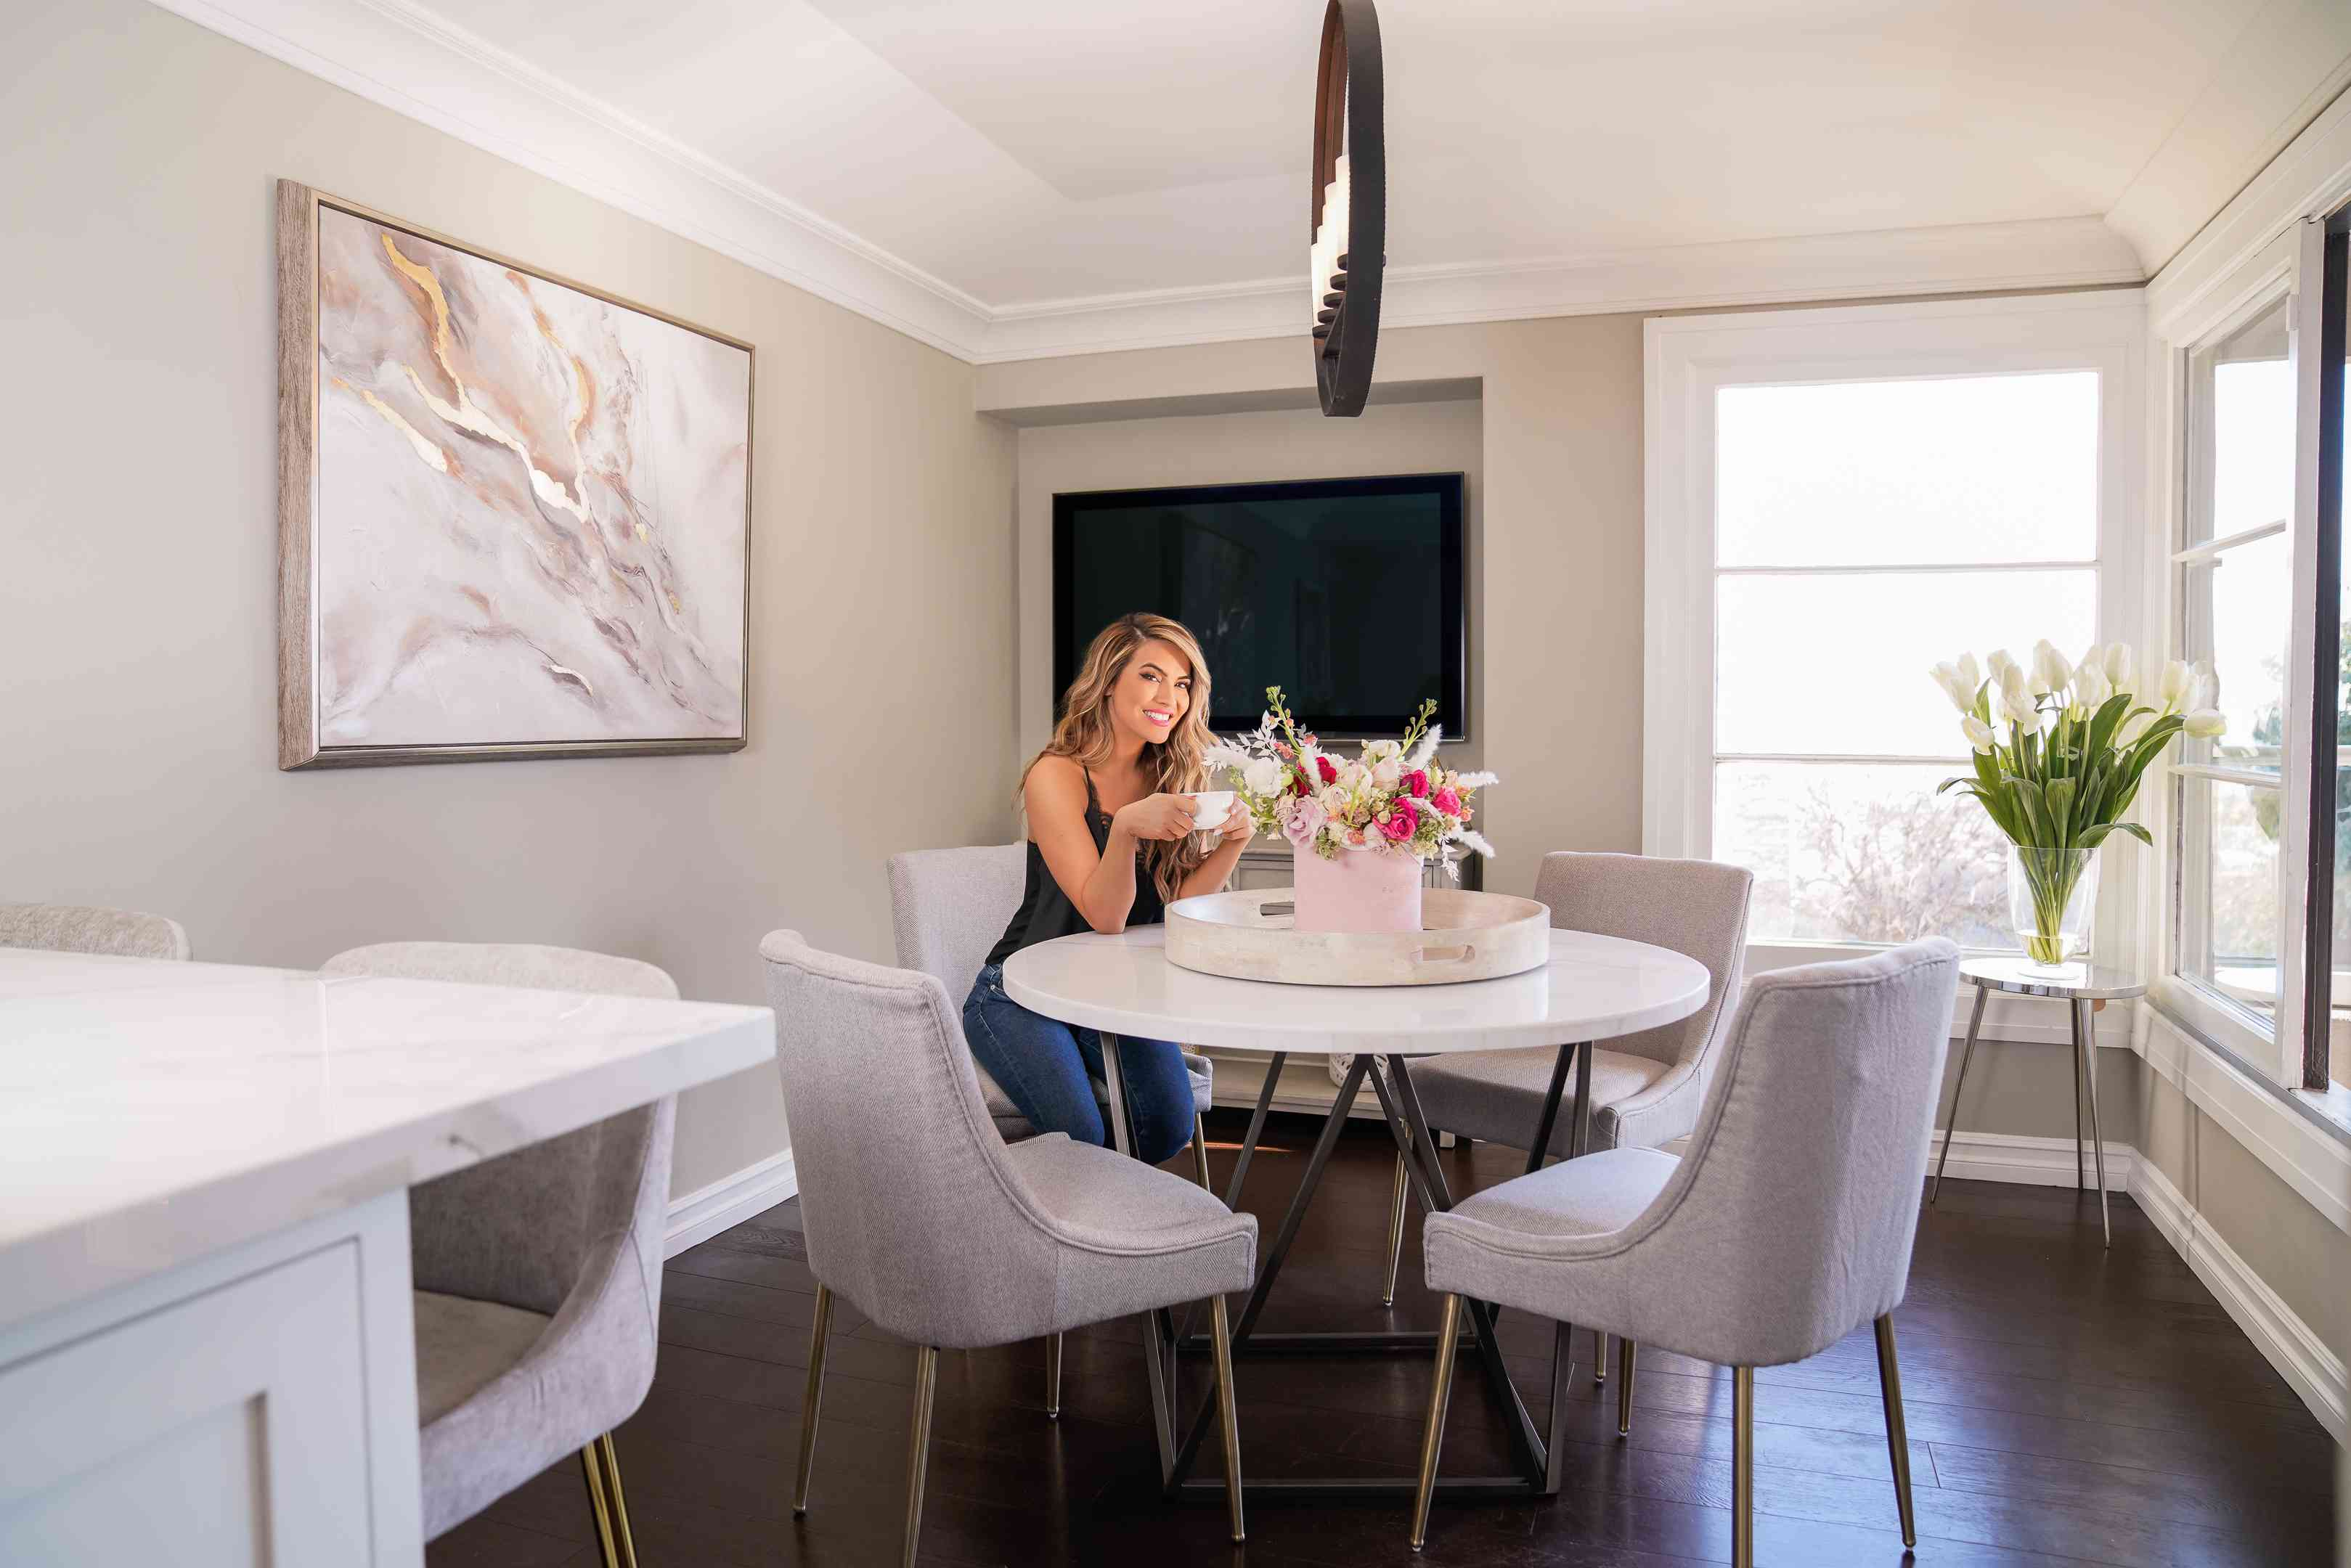 Chrishell Stause poses in her new kitchen nook after redecorating with items from TJMaxx and Marshalls